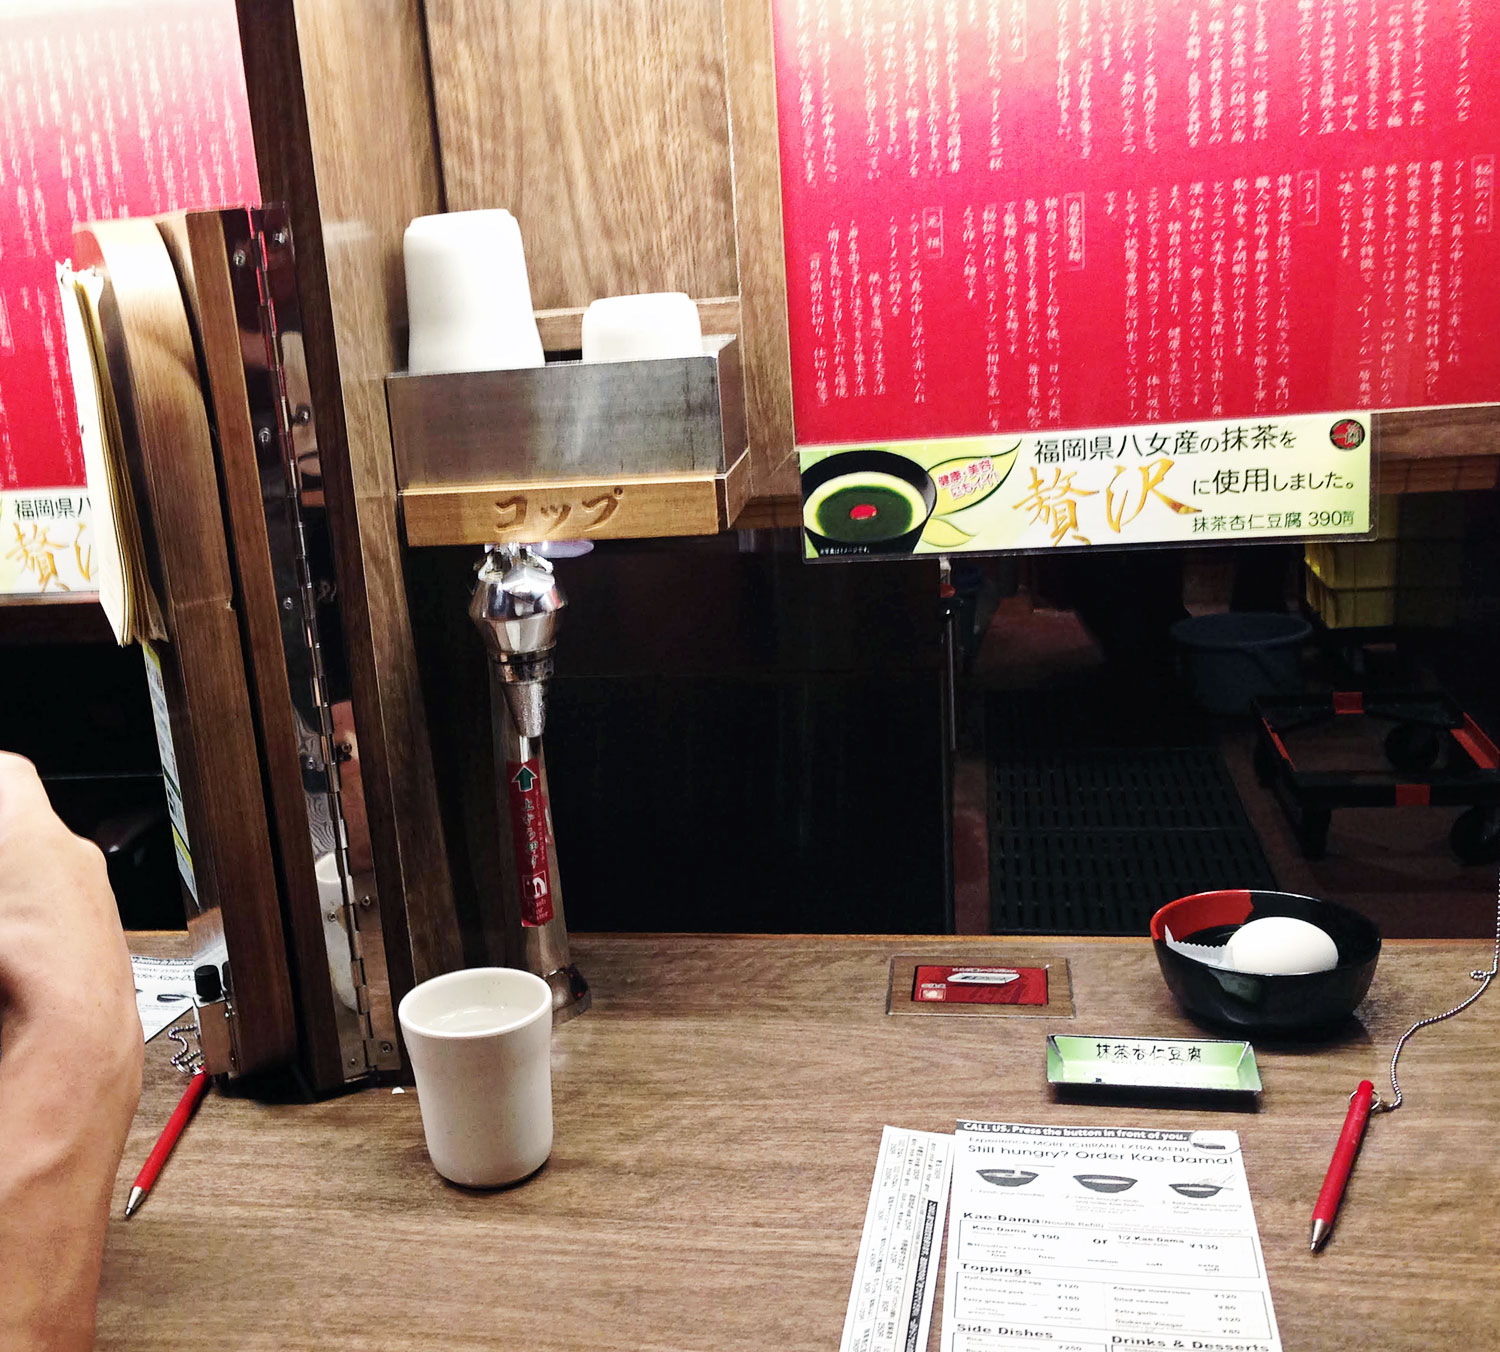 Ichiran Ramen: A Dining Experience without any Human Interaction - Eating at your own private stall